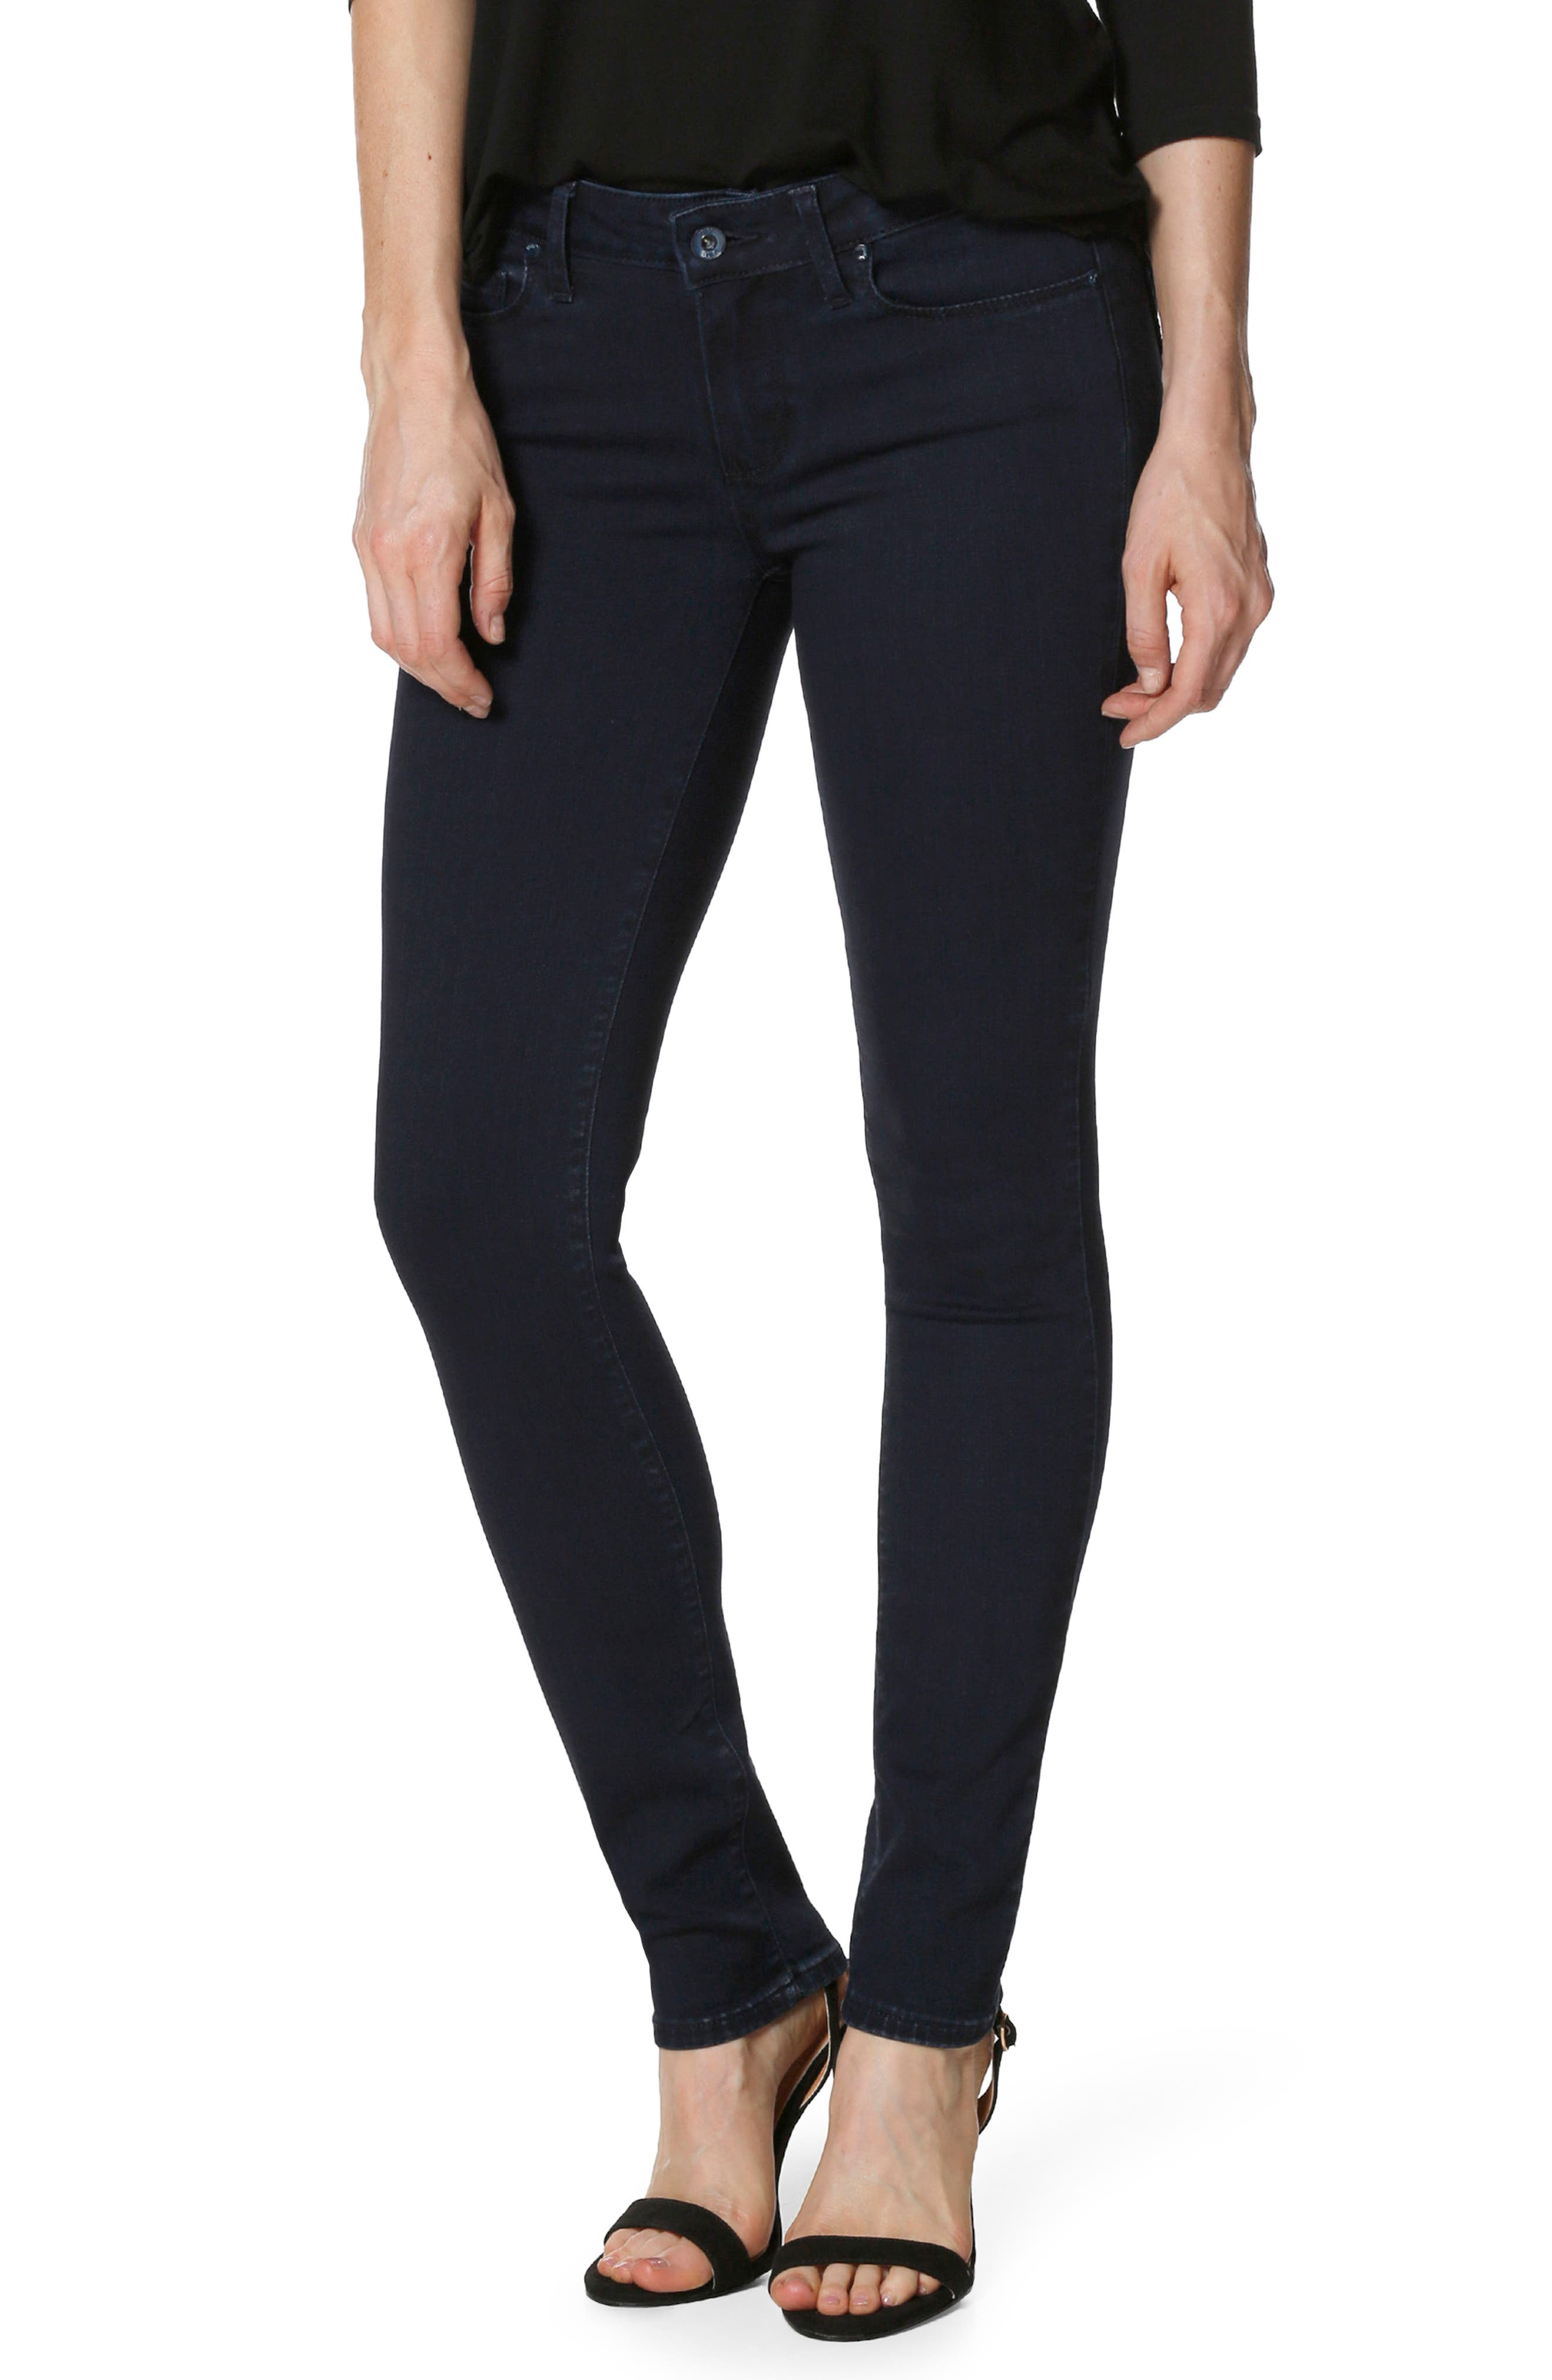 Transcend - Verdugo Ultra Skinny Jeans,                             Main thumbnail 1, color,                             Alley